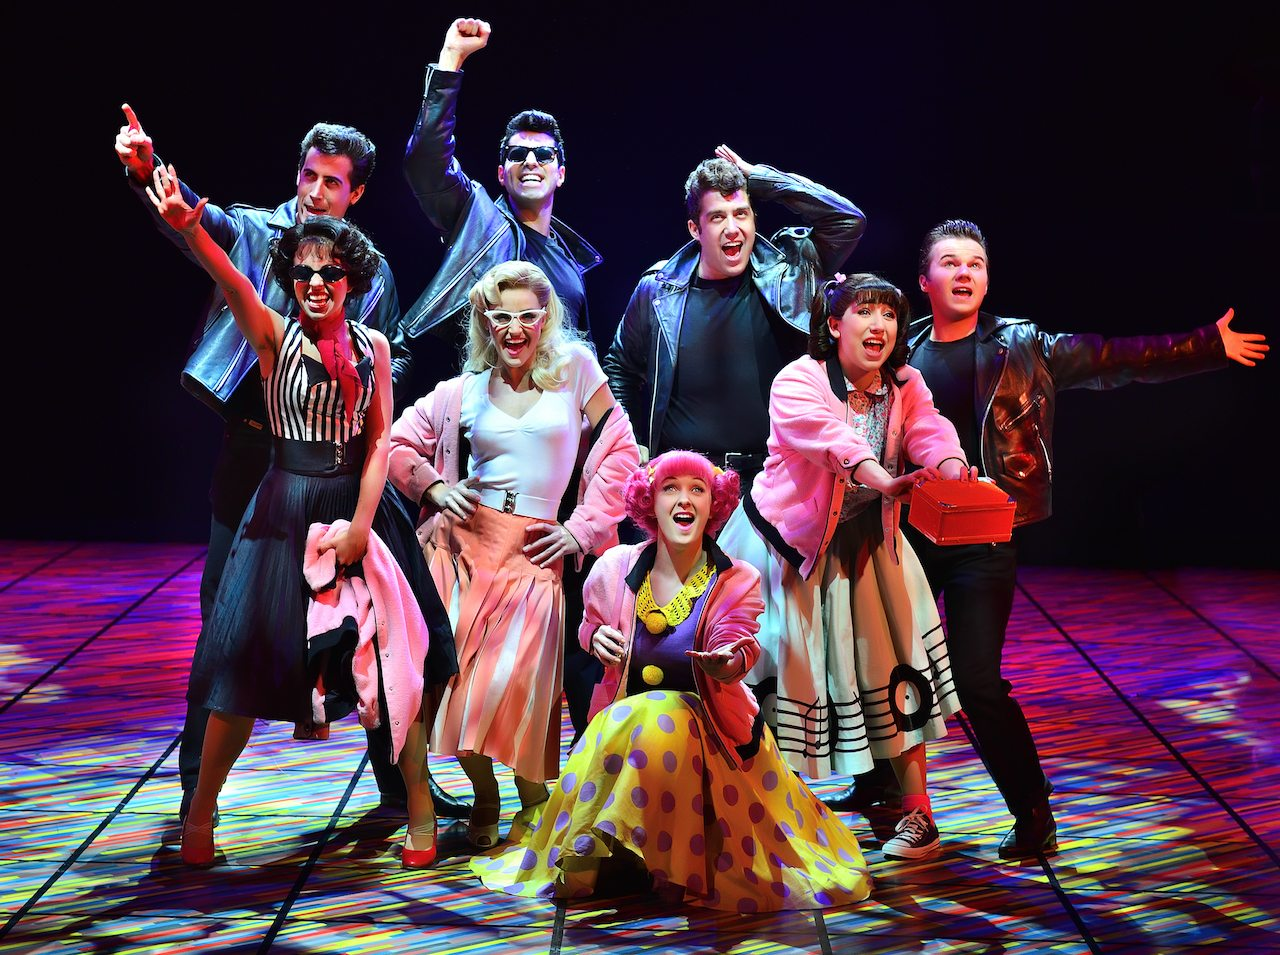 Grease Lightnin' at New Theatre Oxford